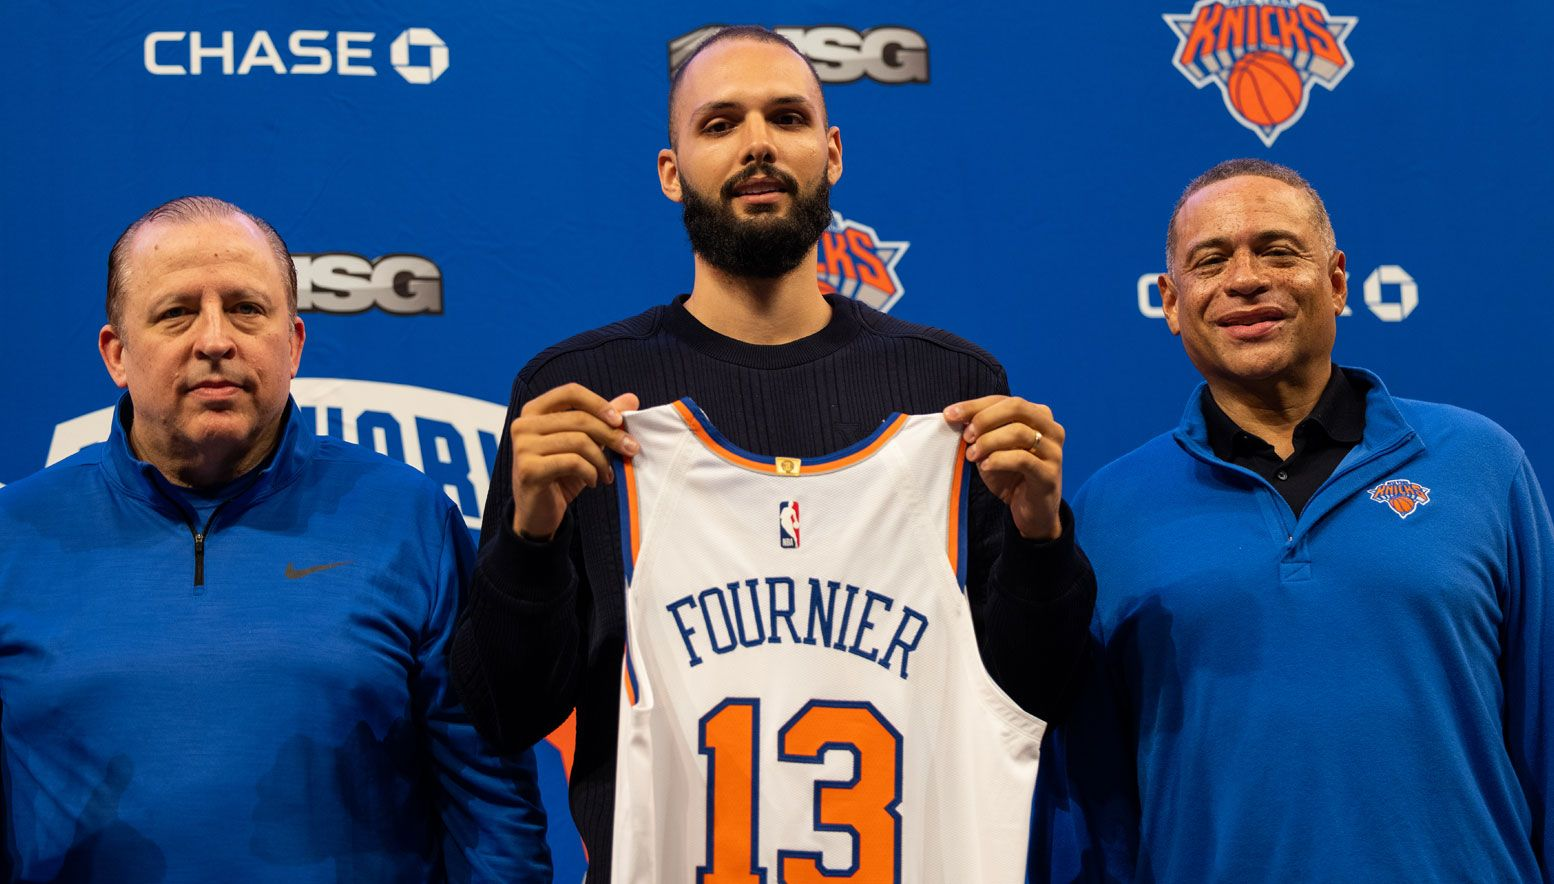 Evan Fournier introduced as a Knick